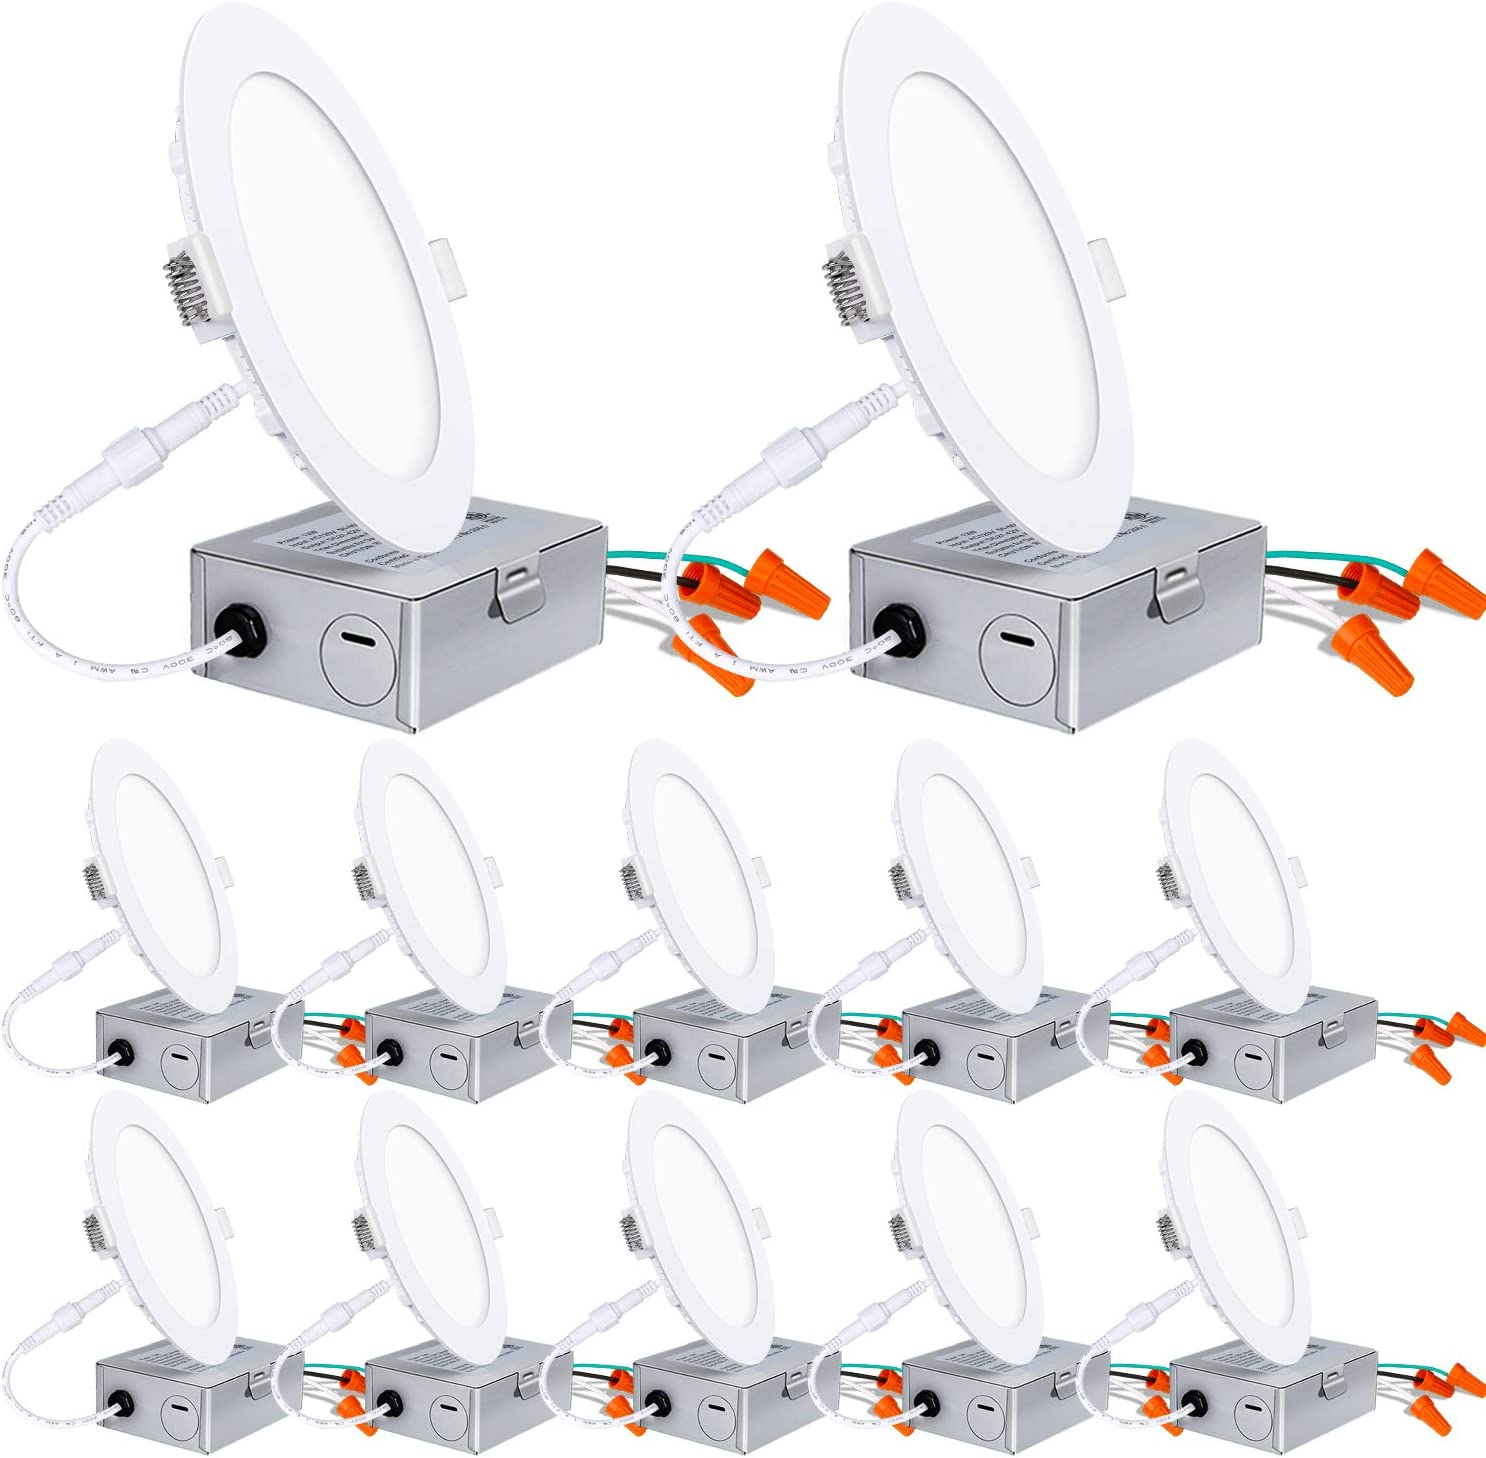 Hykolity 6 Inch LED Recessed Lighting with Junction Box, Smooth Trim, 12 Pack, 12W= 100W, 5000K Daylight, 850lm Dimmable Wafer Light, Canless Soffit Lighting for Shallow Ceiling, ETL